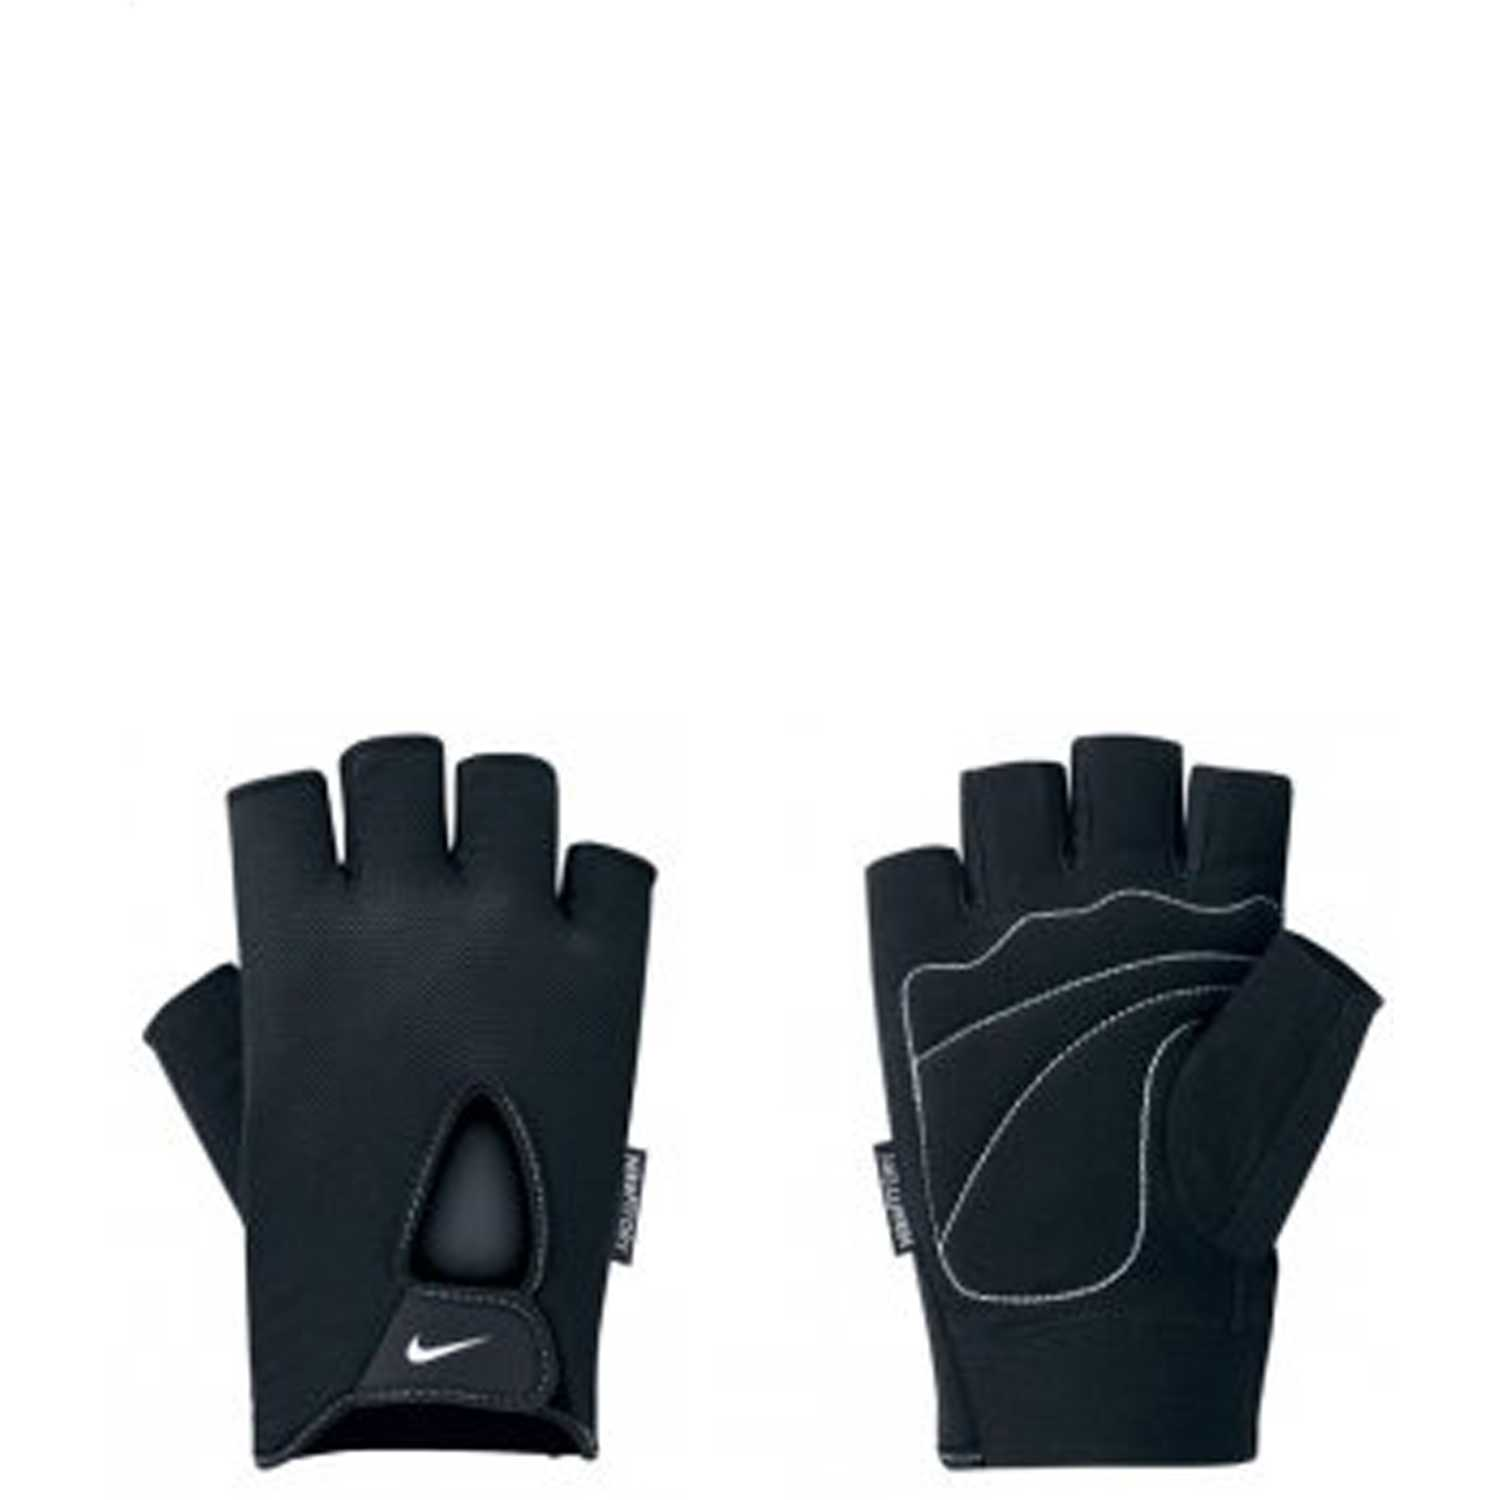 Deportivo de Hombre Nike Negro / blanco mens fundamental training gloves l